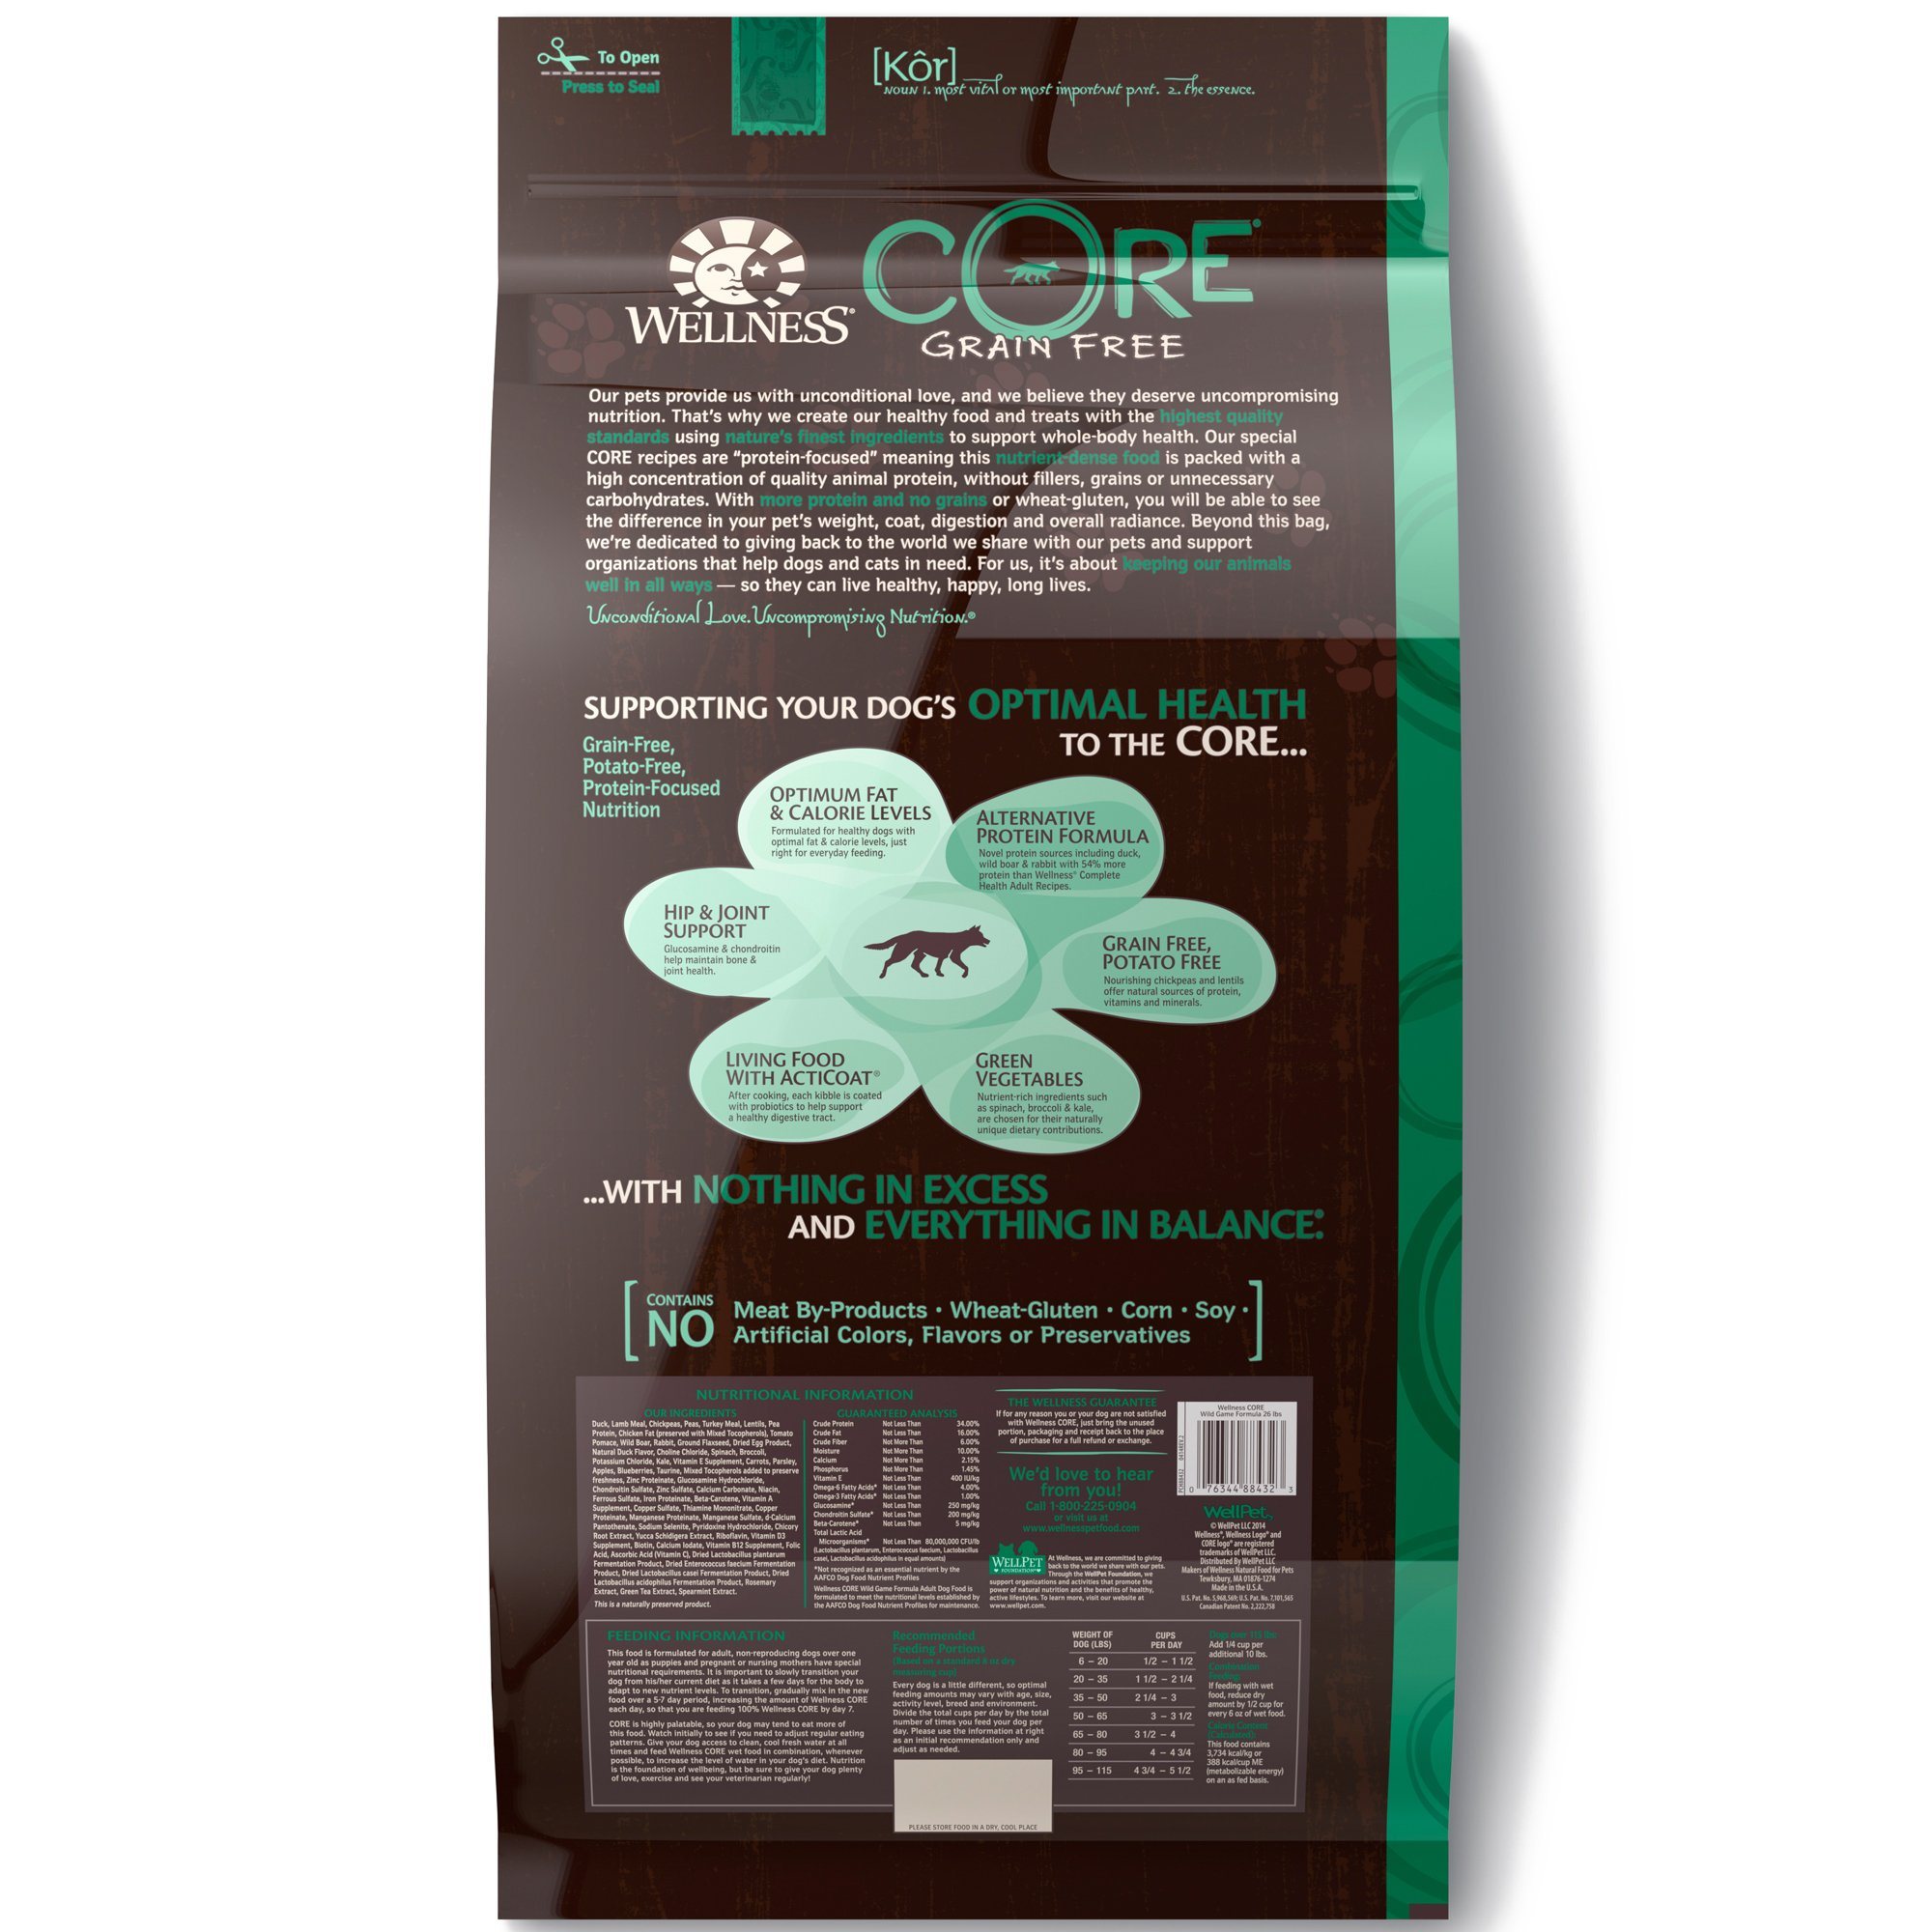 Wellness CORE Natural Grain Free Dry Dog Food, Wild Game Duck, Turkey, Boar & Rabbit, 26-Pound Bag by WELLNESS CORE (Image #2)